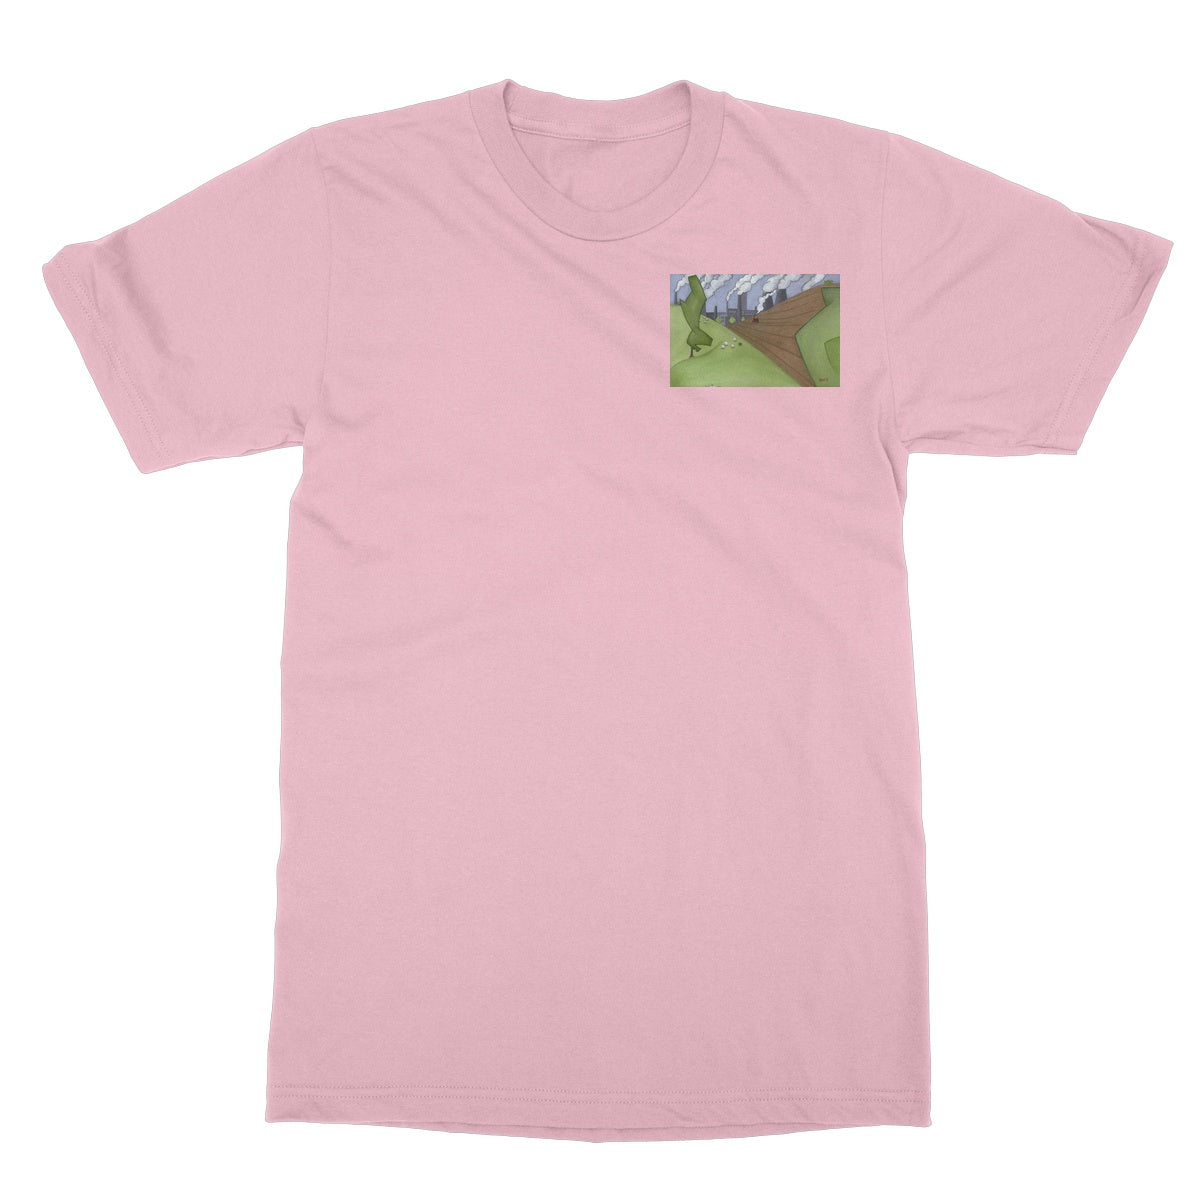 The Farm Softstyle T-Shirt